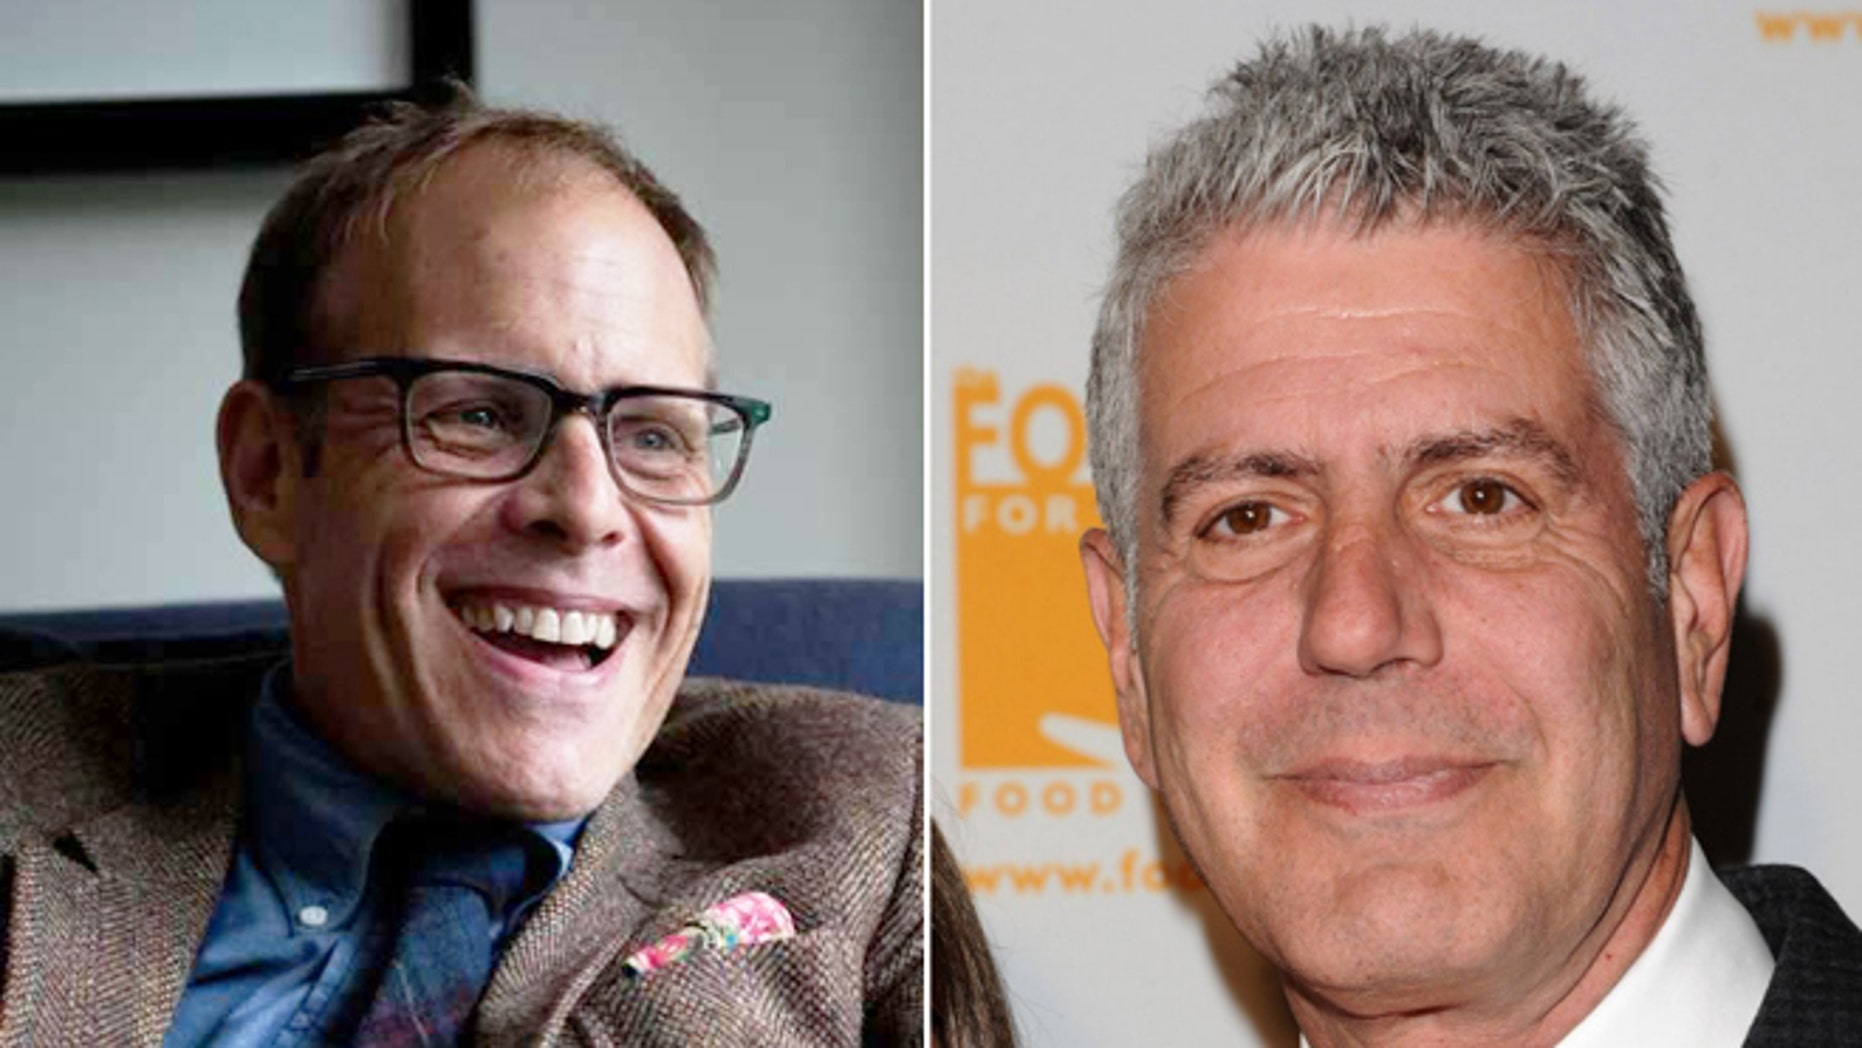 Alton Brown says he hasn't seen Anthony Bourdain wield a knife in the kitchen for quite some time.